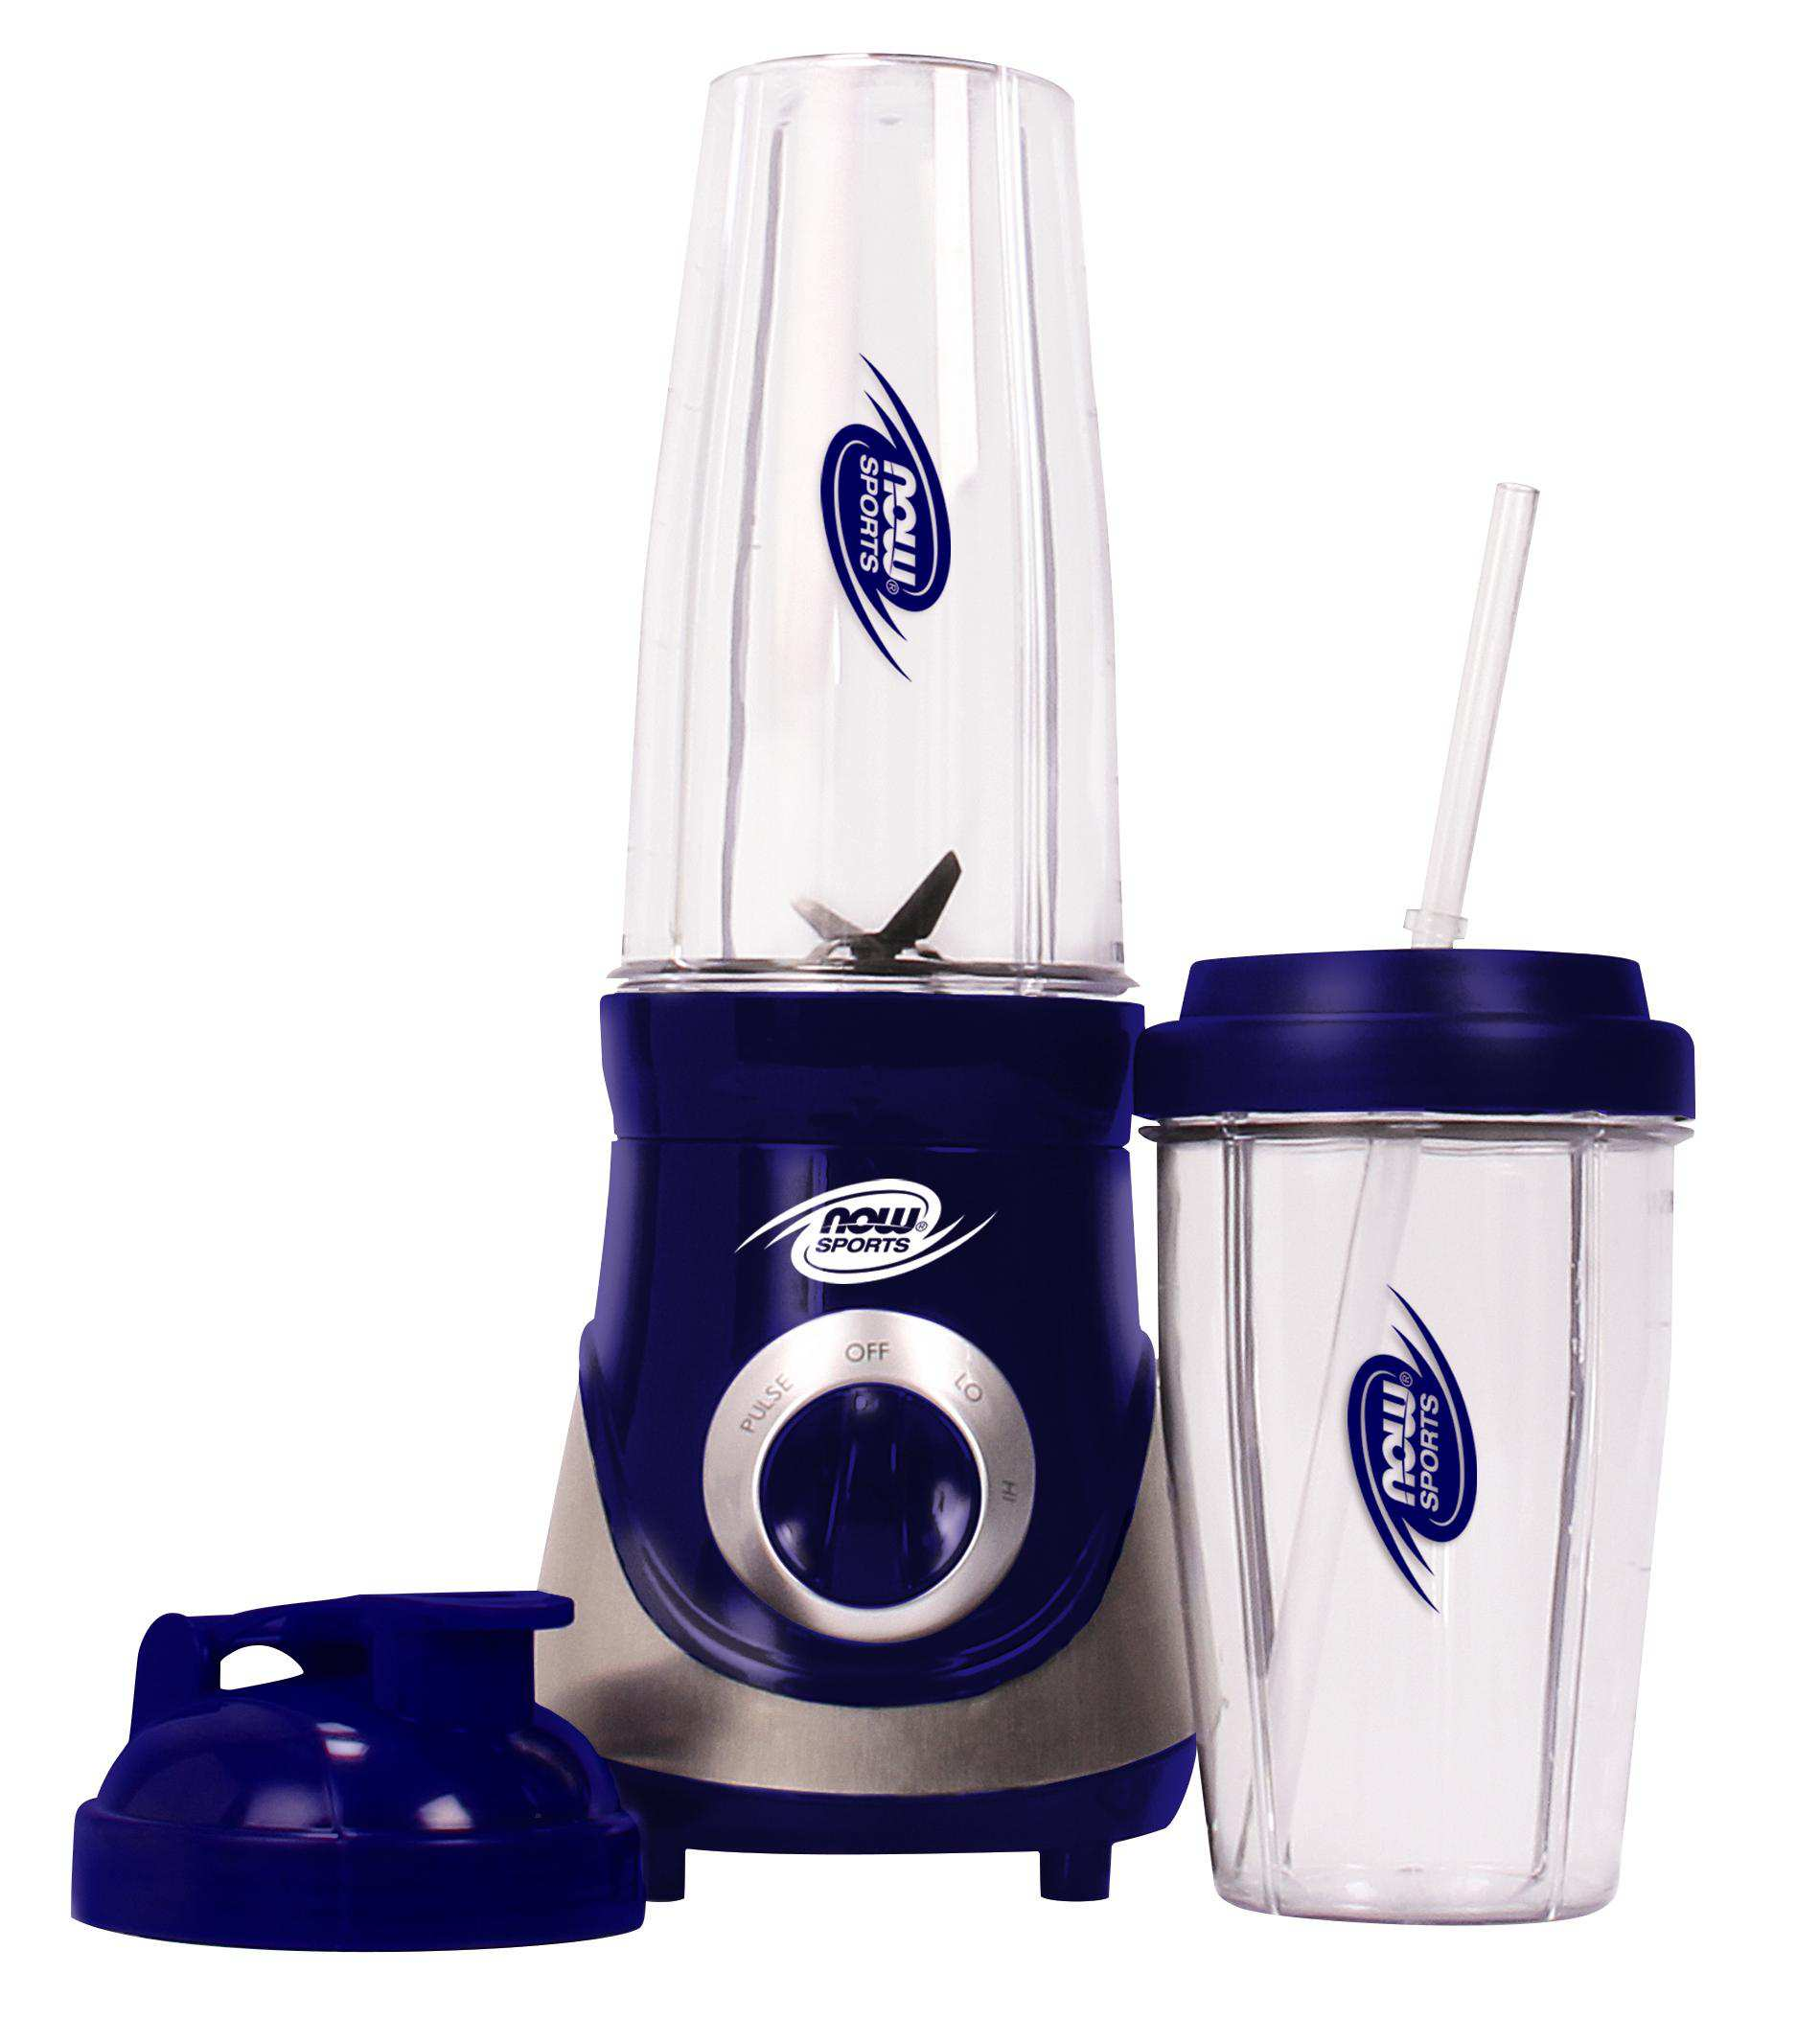 NOW Sports Electric Personal Blenders